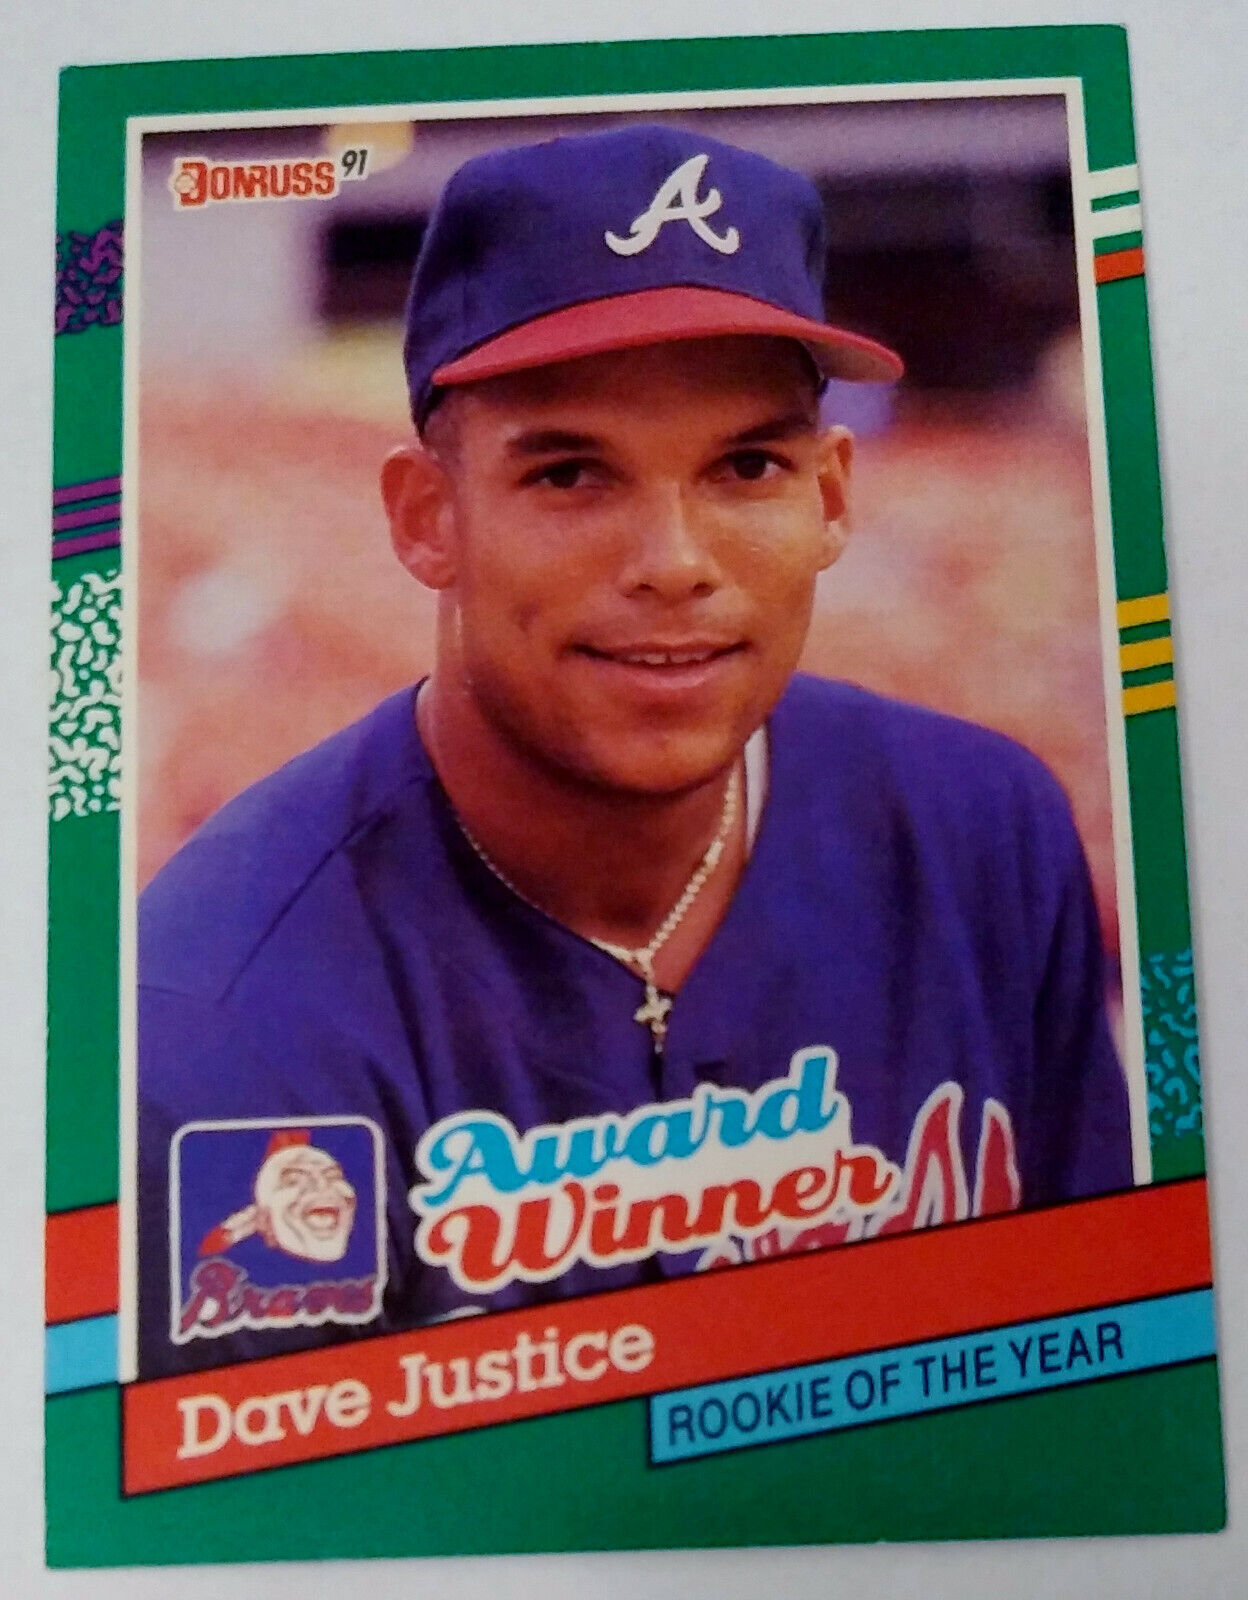 1991 Donruss Dave Justice Rookie Of The Year 683 - $0.99